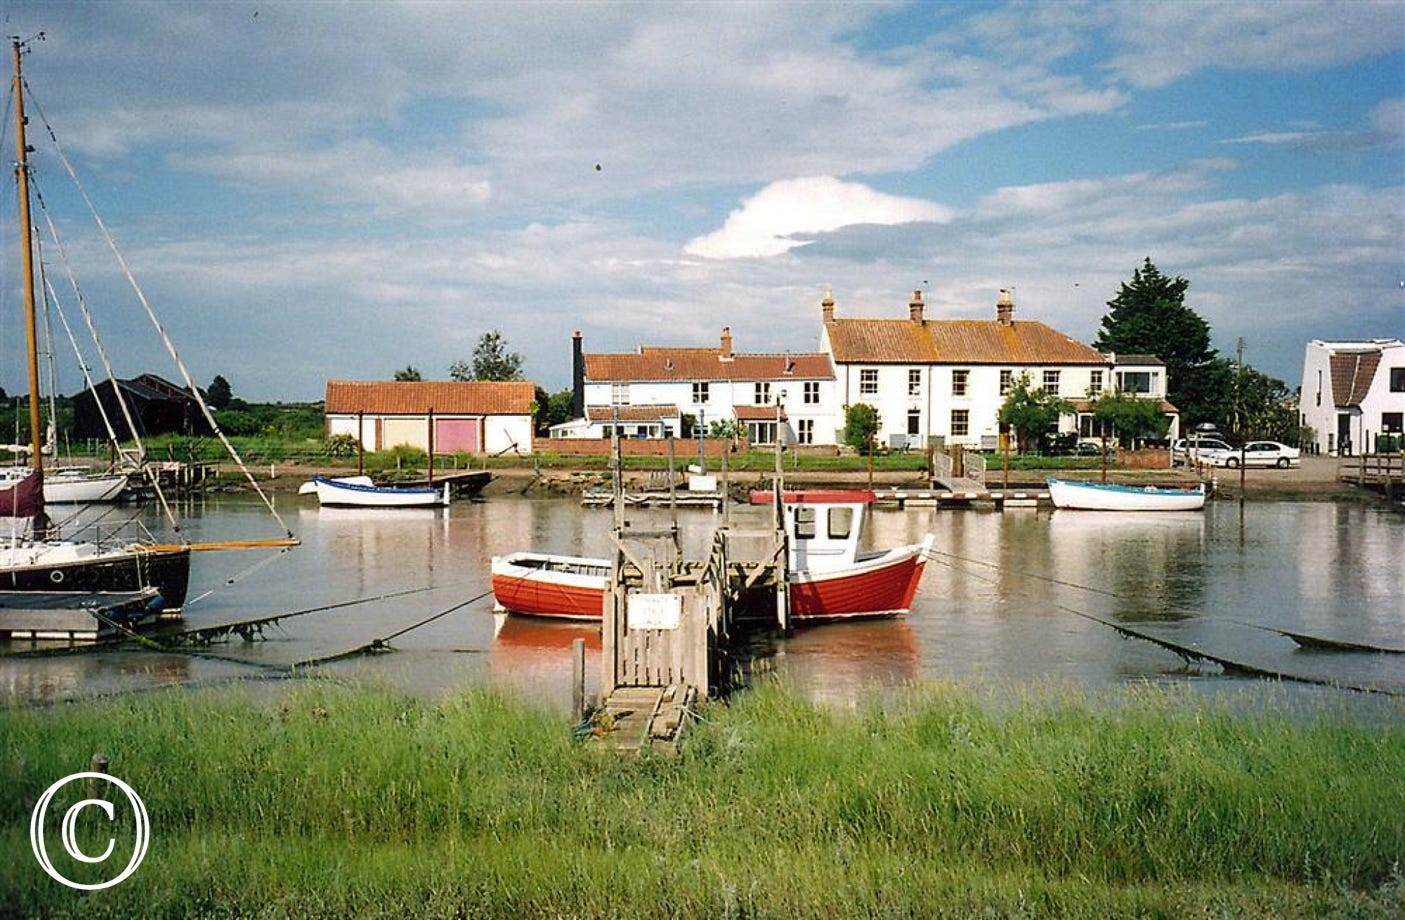 Harbour Cottage is situated right on the Southwold's Harbour edge looking out onto the pretty village of Walberswick.